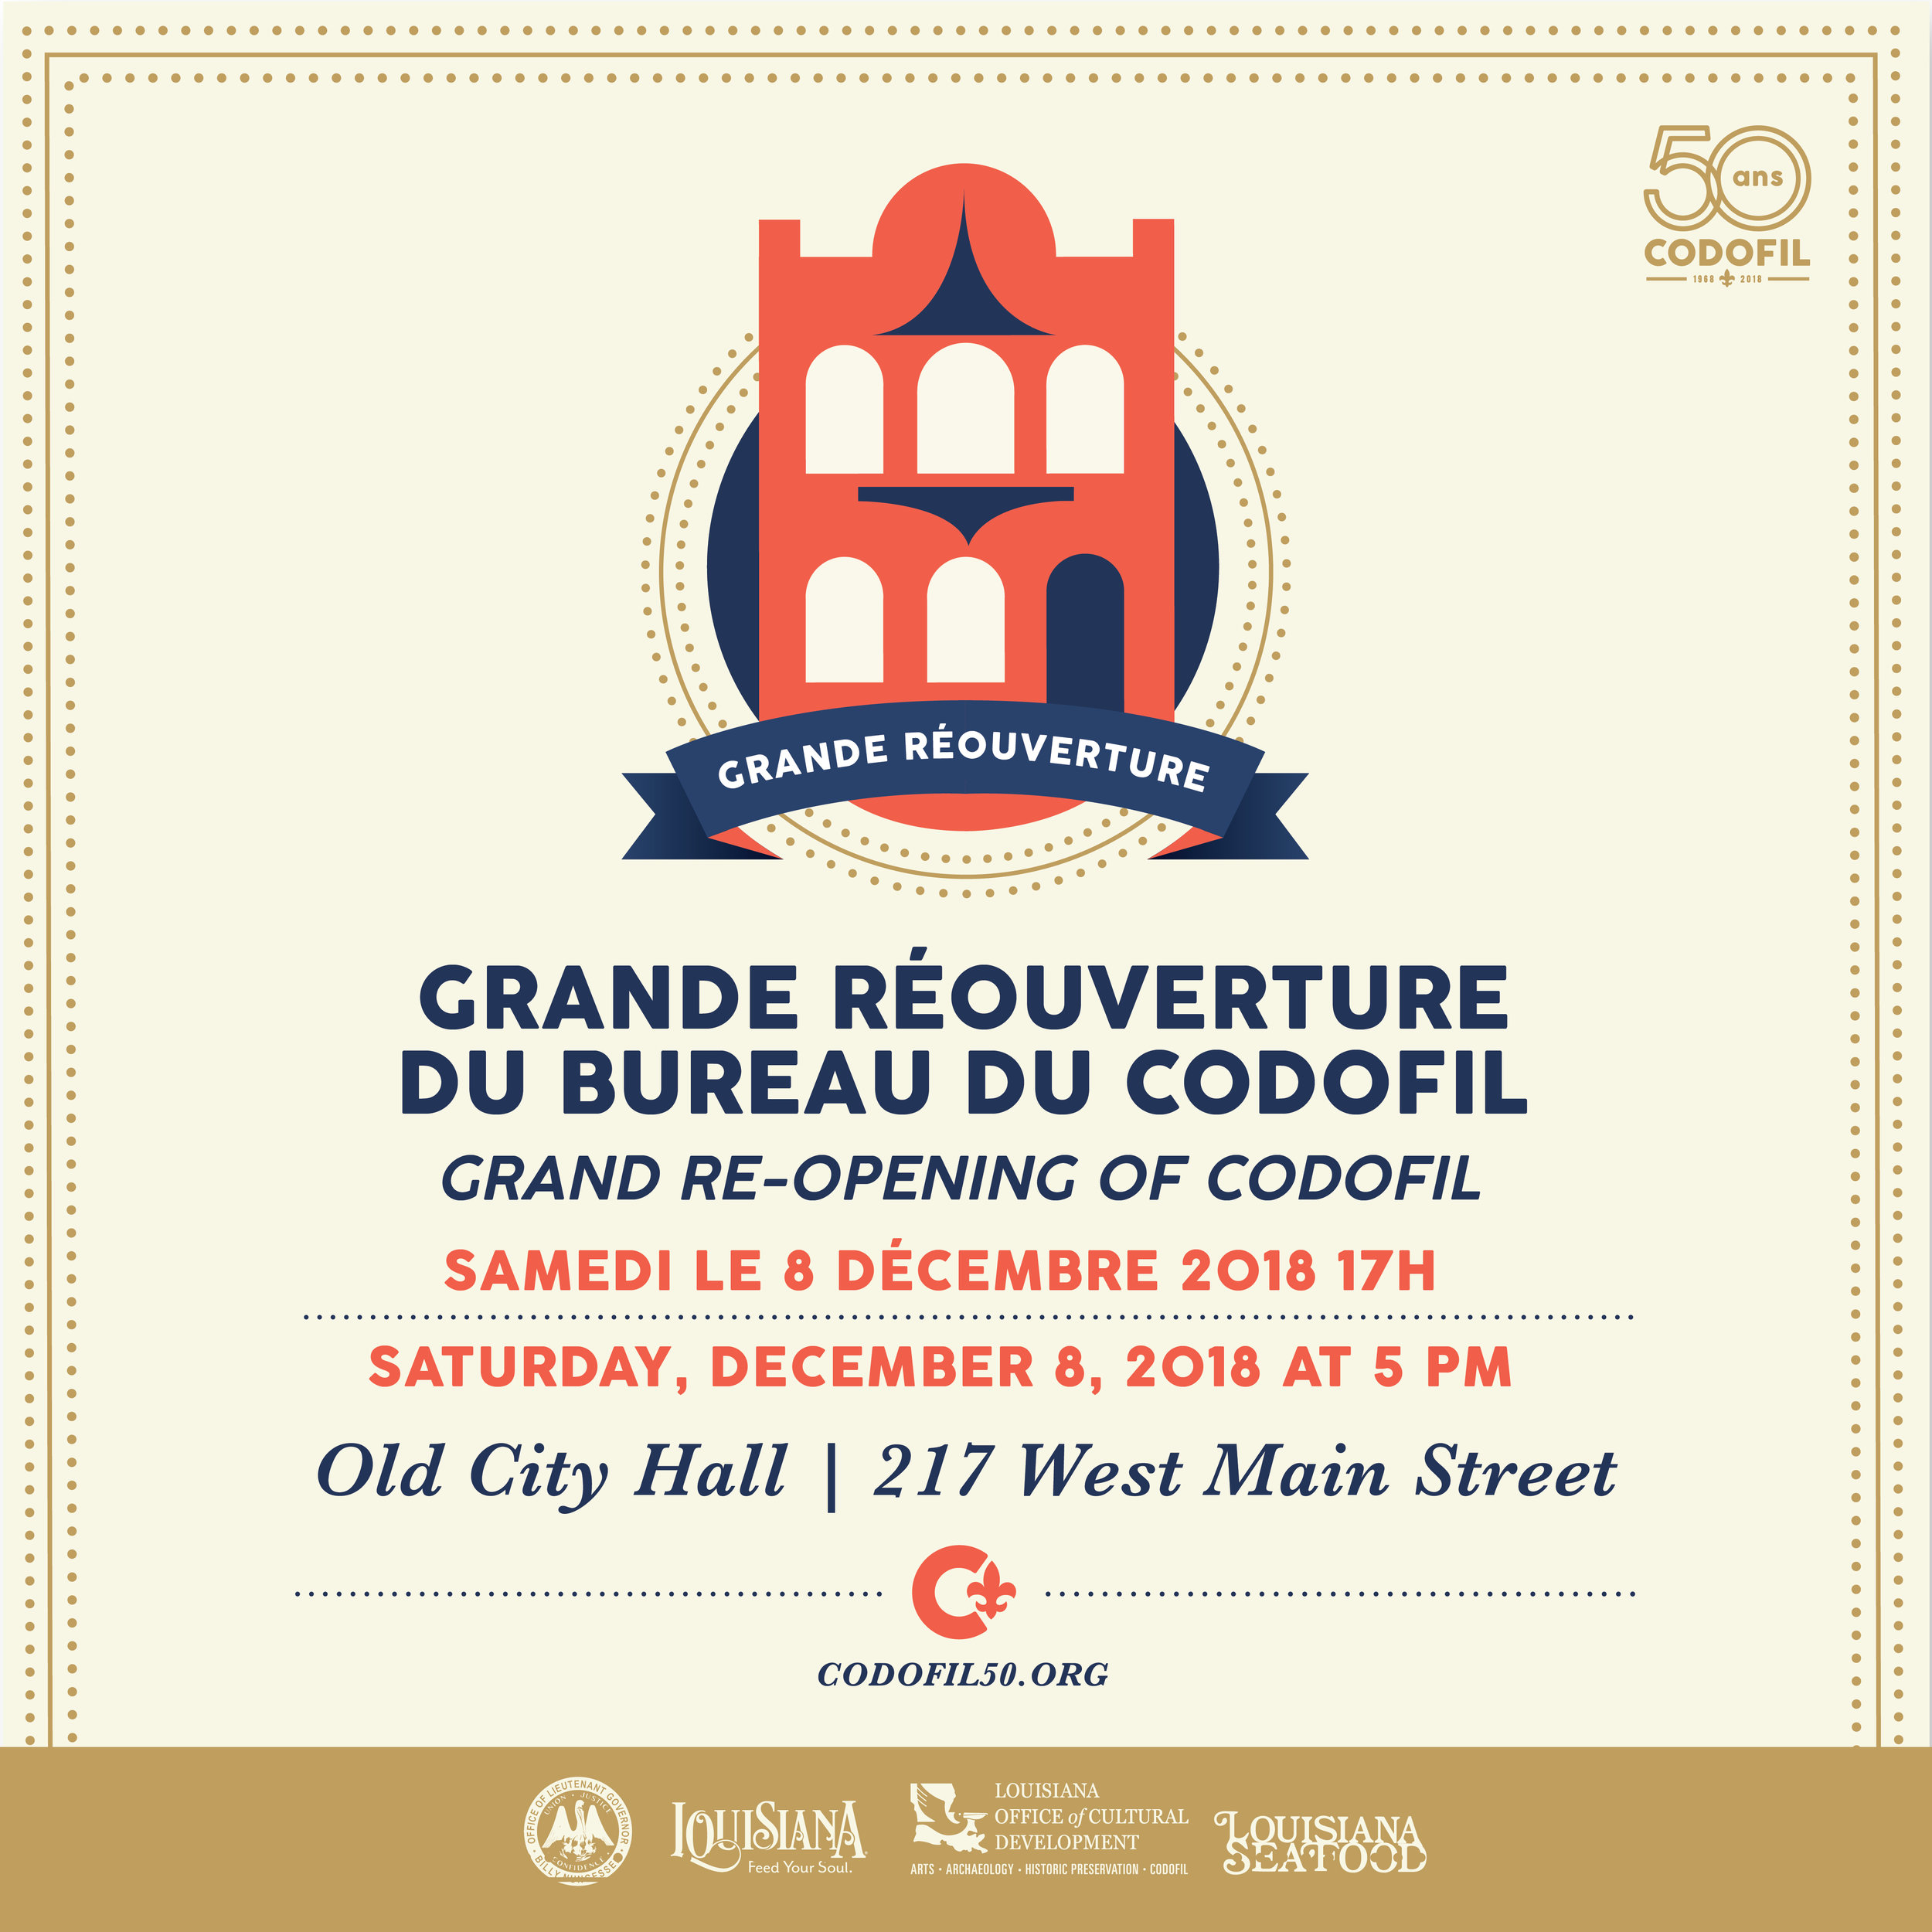 CODOFIL50 Grand ReOpening 113018Digital-02Instagram.jpg